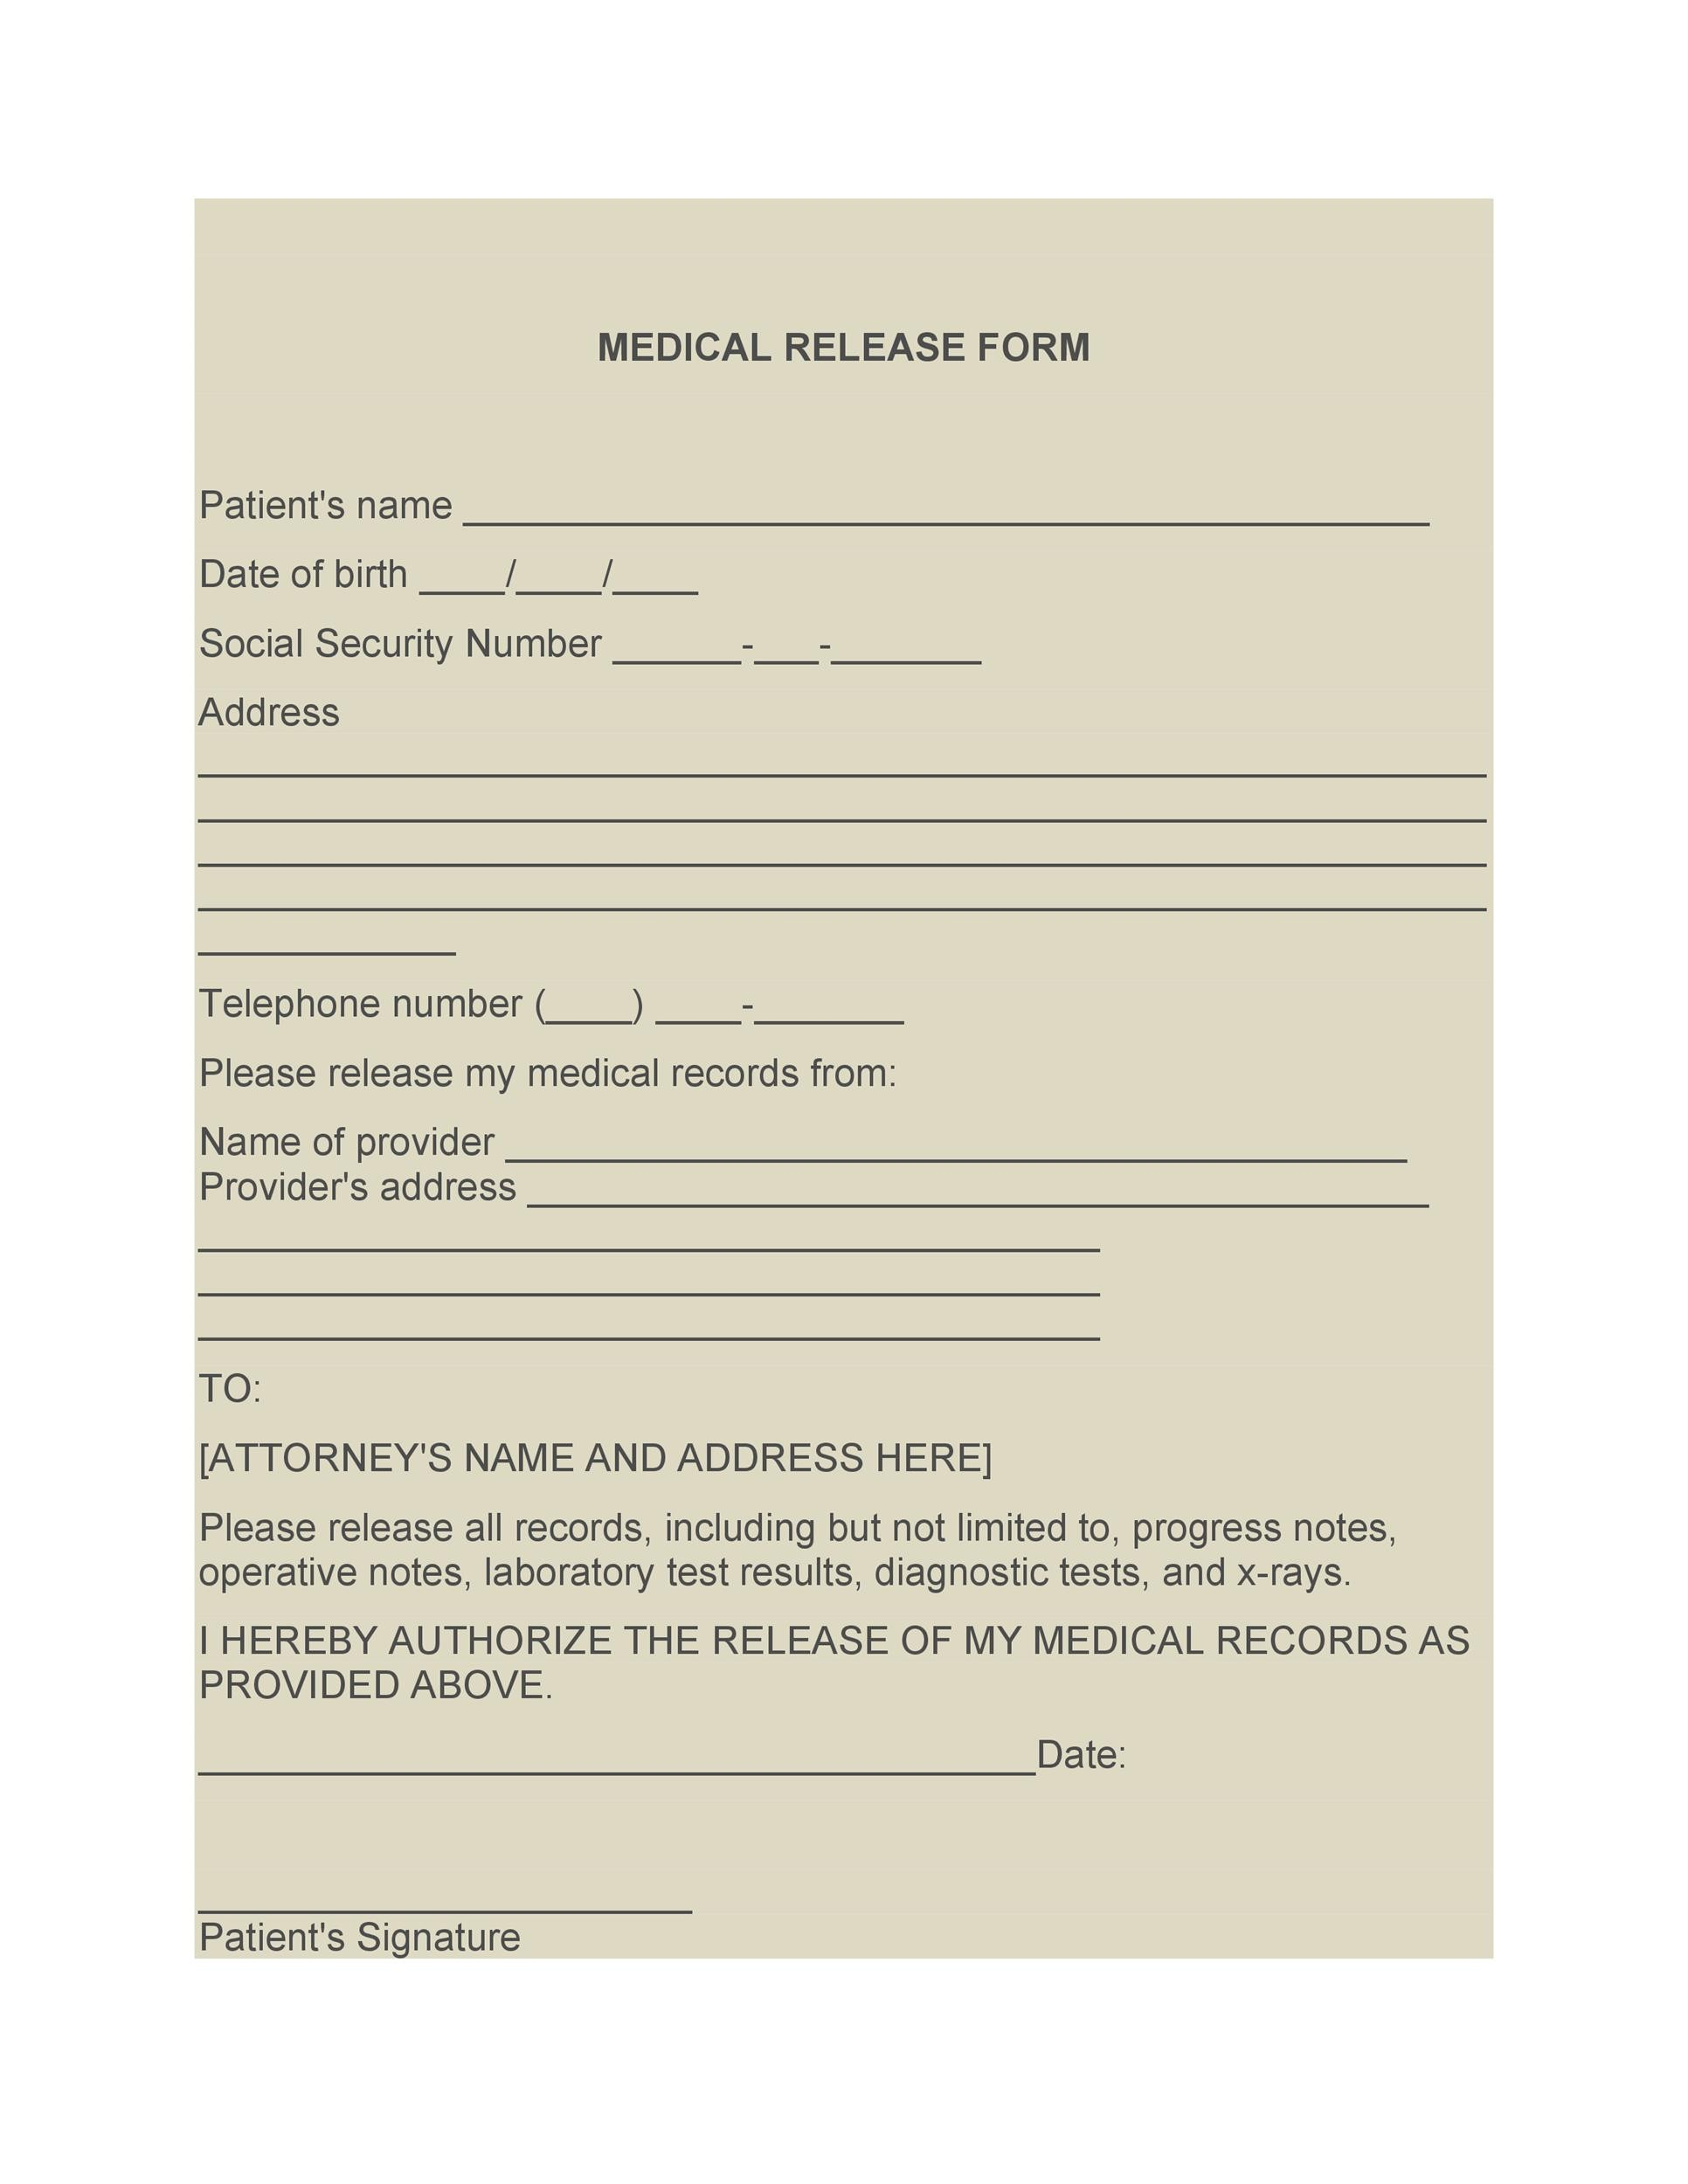 Medical Consent Form. Sample Medical Consent Form | Printable